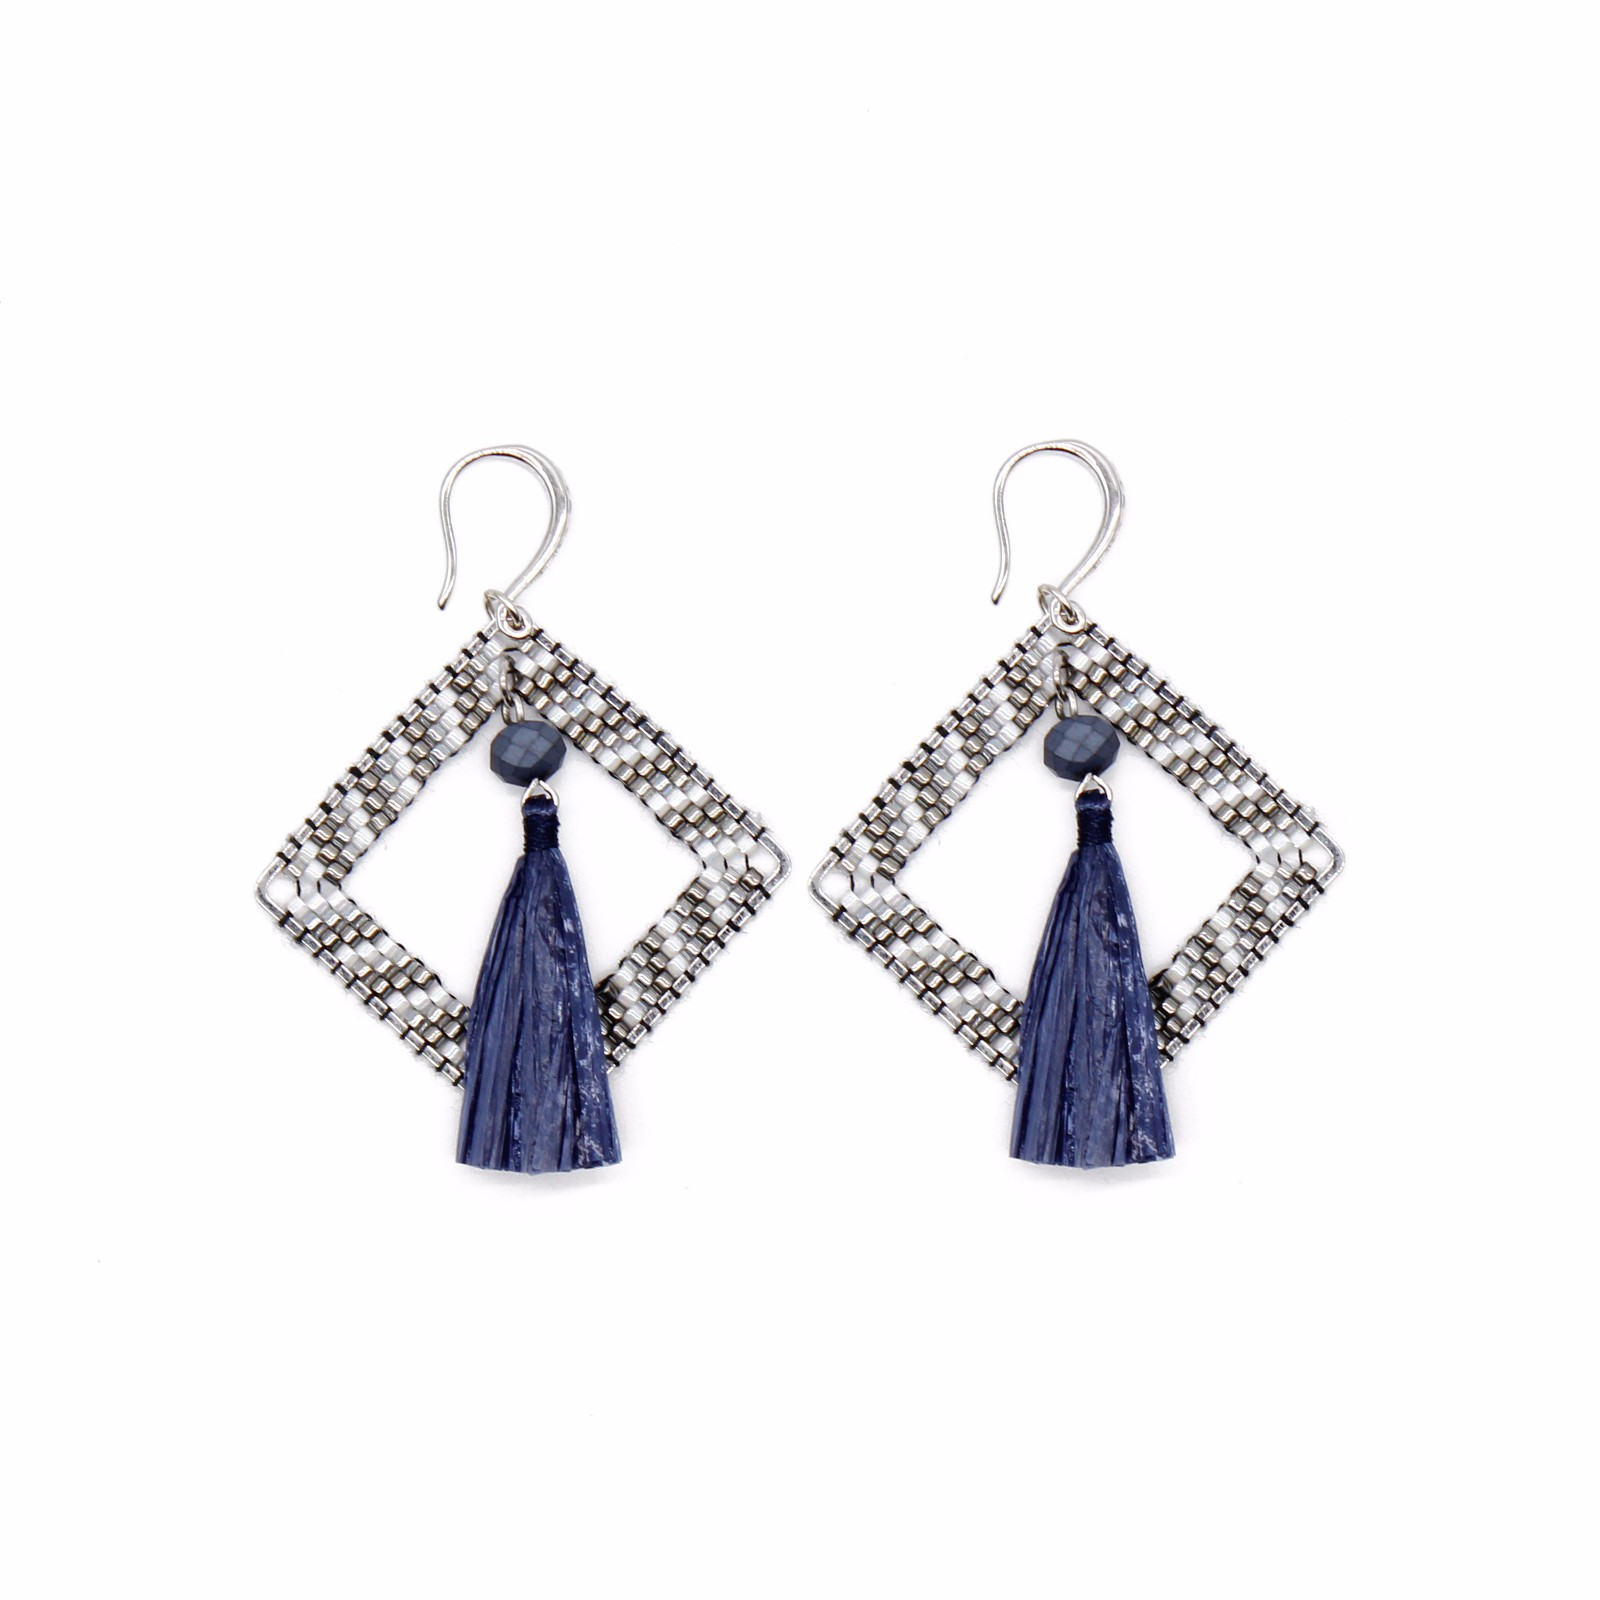 jewelry vendor Navy Blue Raffia Statement Earrings with Miyuki Beads